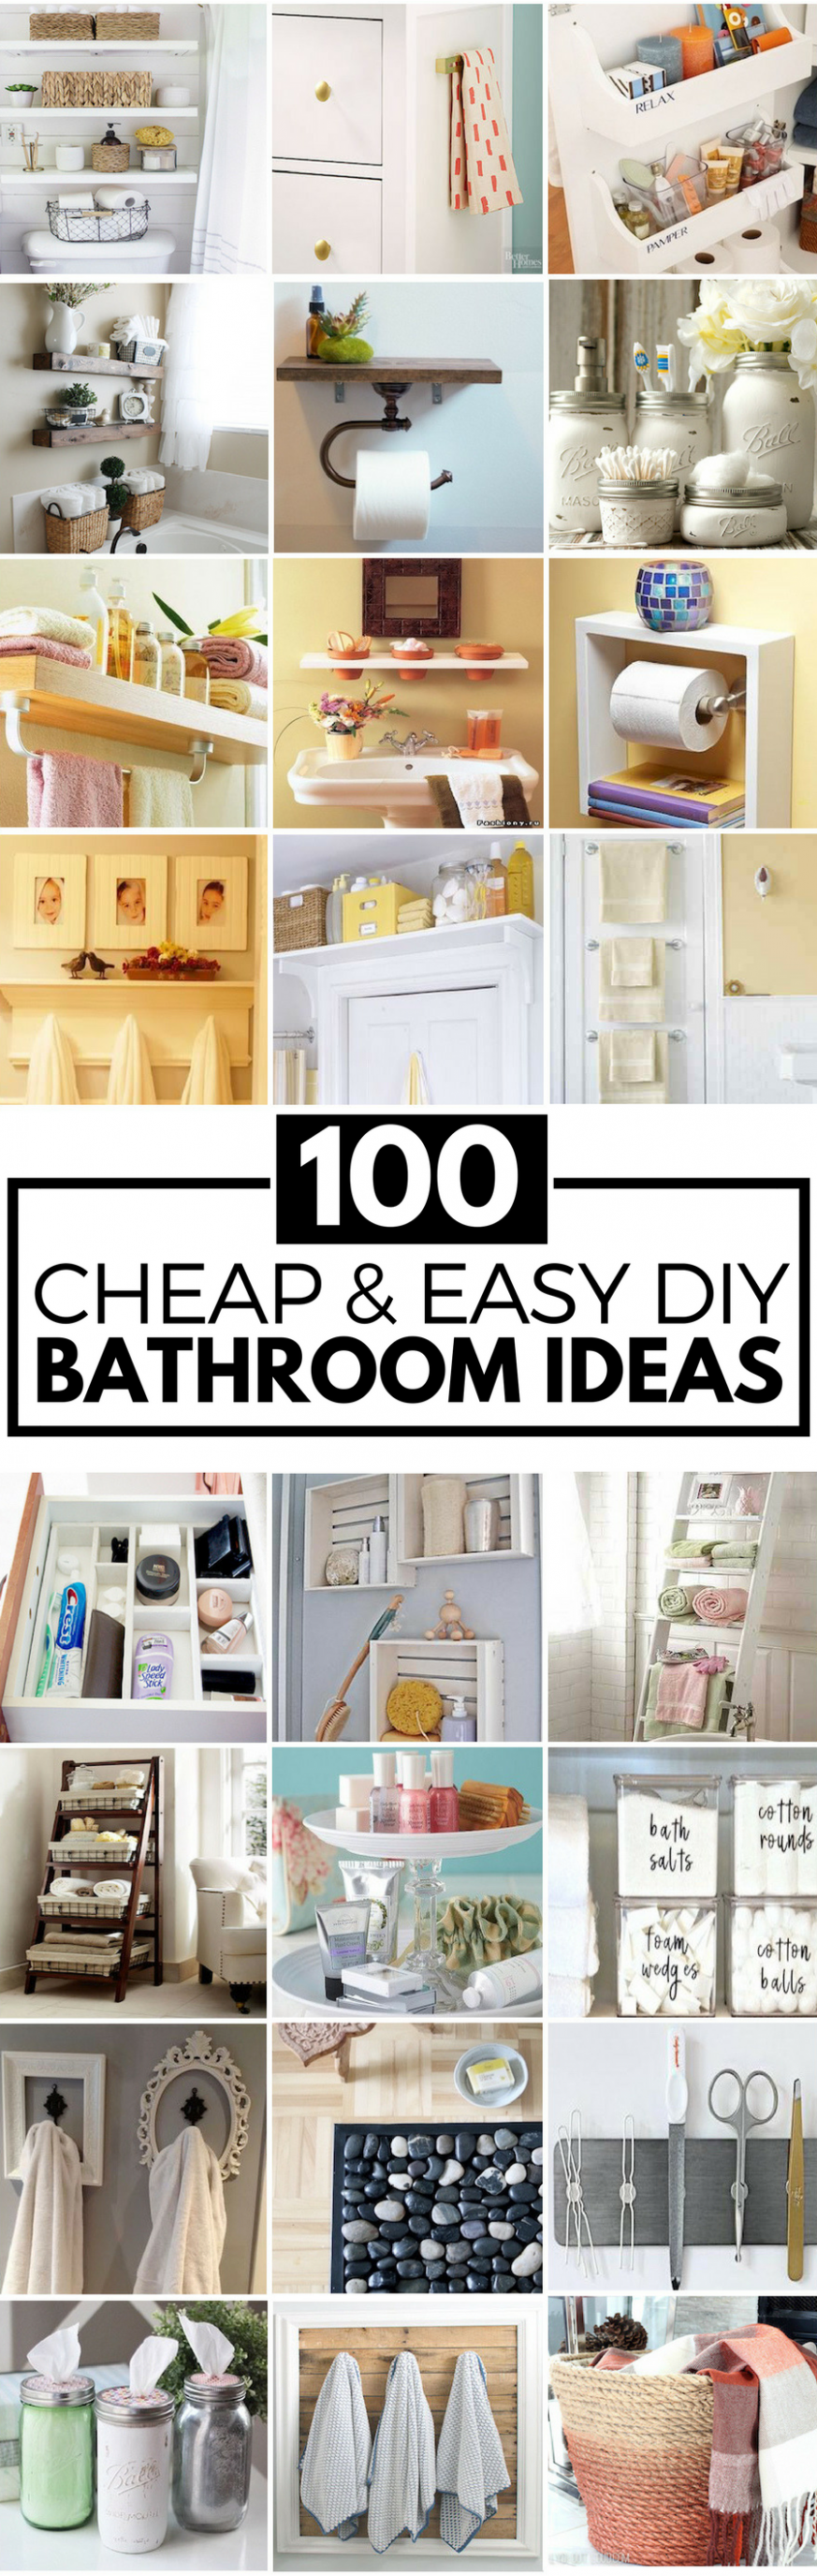 12 Cheap and Easy DIY Bathroom Ideas | Einfaches wohndekor ...